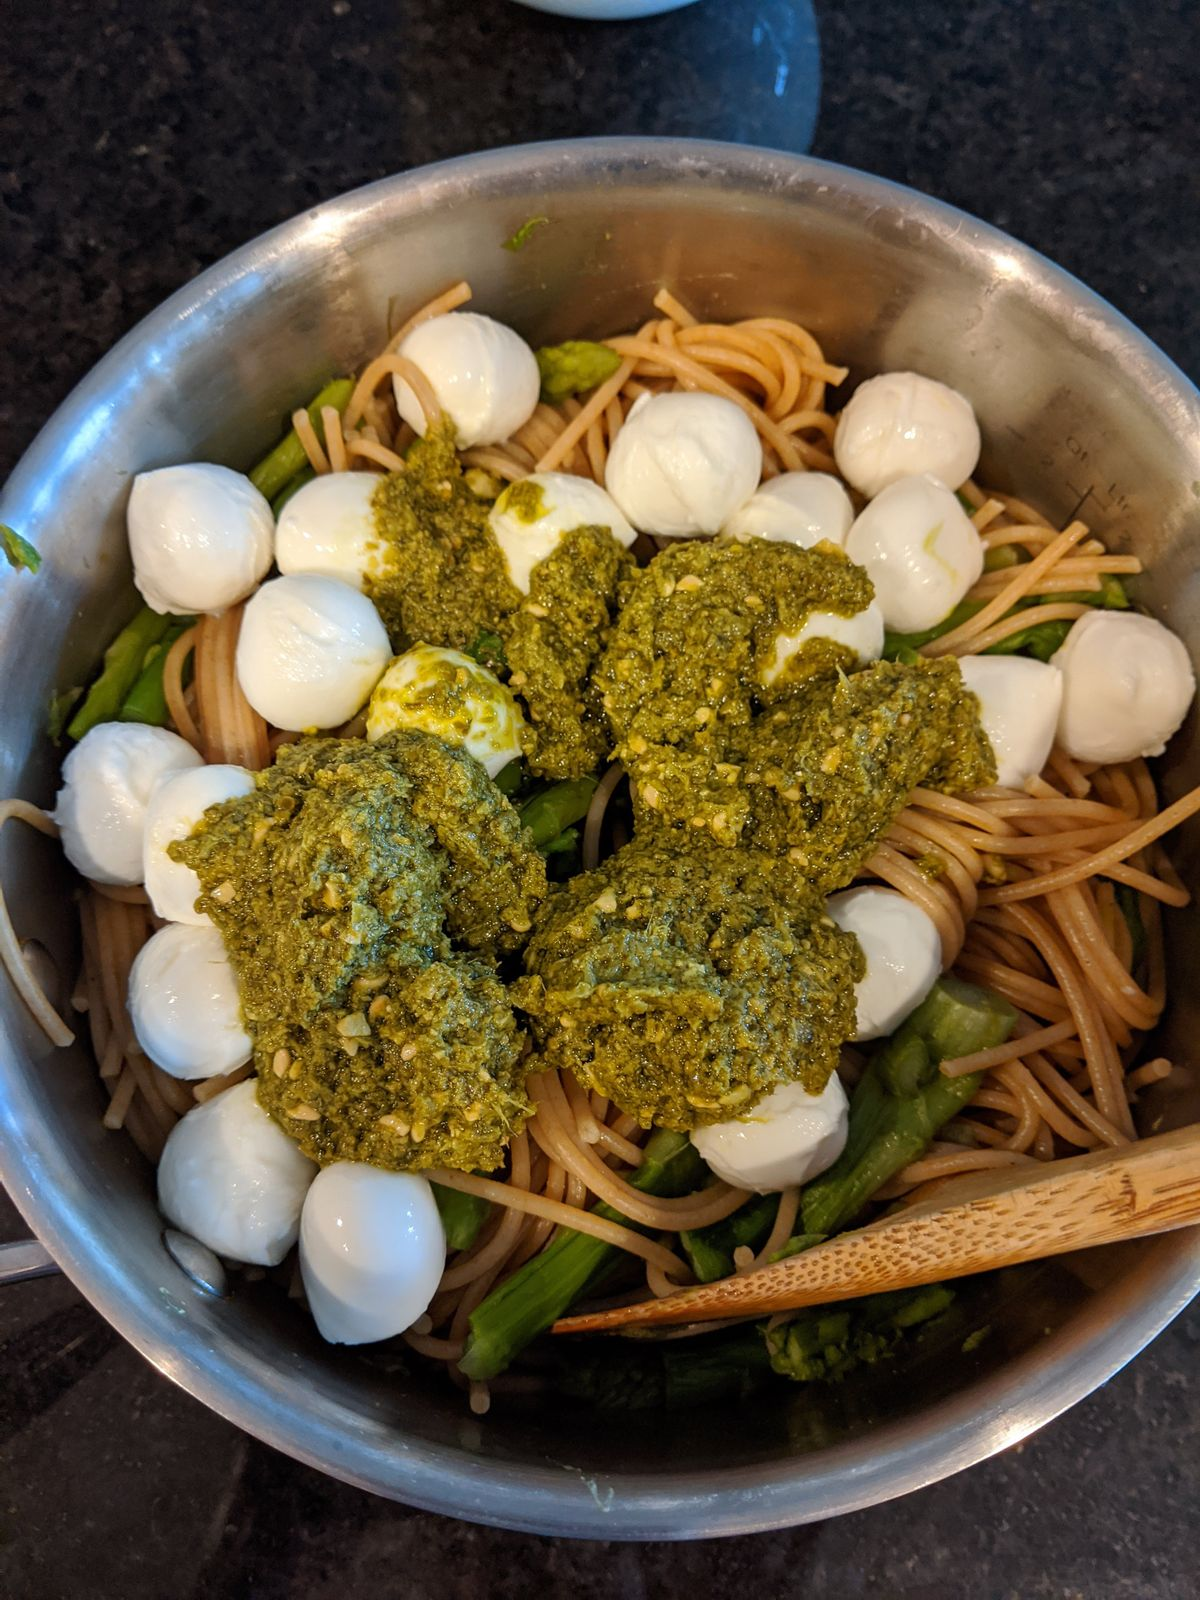 Modifications: The recipe called for making your own pesto, which I didn't do. I also served it in the pan - less dishes to wash!